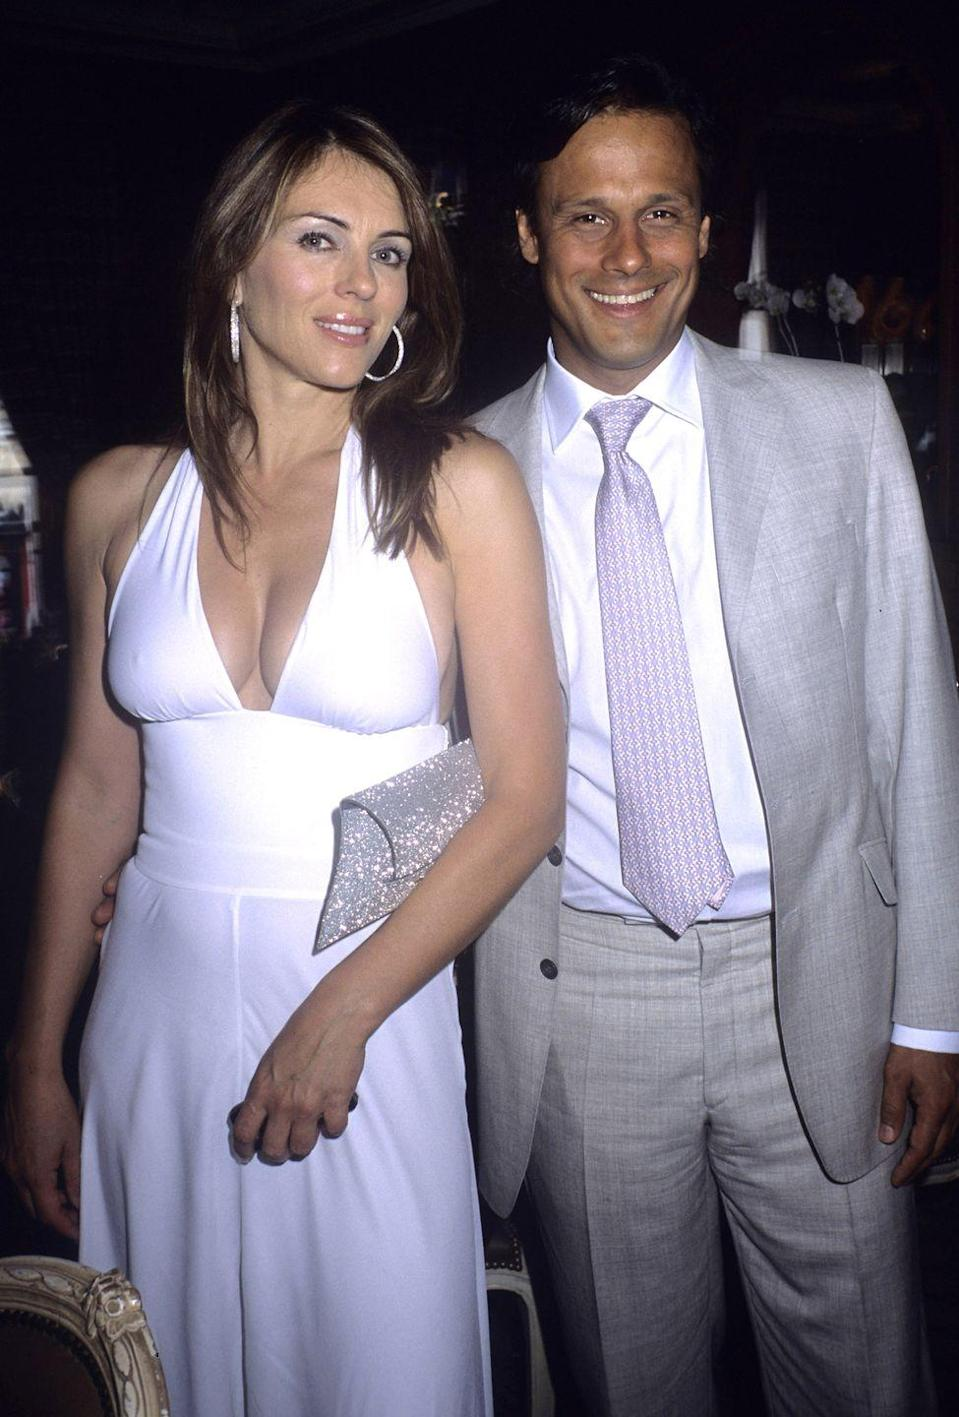 "<p>Tradition was key for Elizabeth Hurley and Arun Nayar. The couple ended up <a href=""https://www.cbsnews.com/pictures/most-expensive-weddings-of-all-time/5/#:~:text=The%20wedding%20of%20the%2021st,which%20cost%20a%20whopping%20%24434%2C000."" rel=""nofollow noopener"" target=""_blank"" data-ylk=""slk:having two ceremonies"" class=""link rapid-noclick-resp"">having two ceremonies</a>: one traditional wedding in an English castle and a Hindu ceremony in Nayar's hometown of Jodhpur, India. Together, the events cost around $2.5 million. The pair were only married for four years and divorced in 2011. </p>"